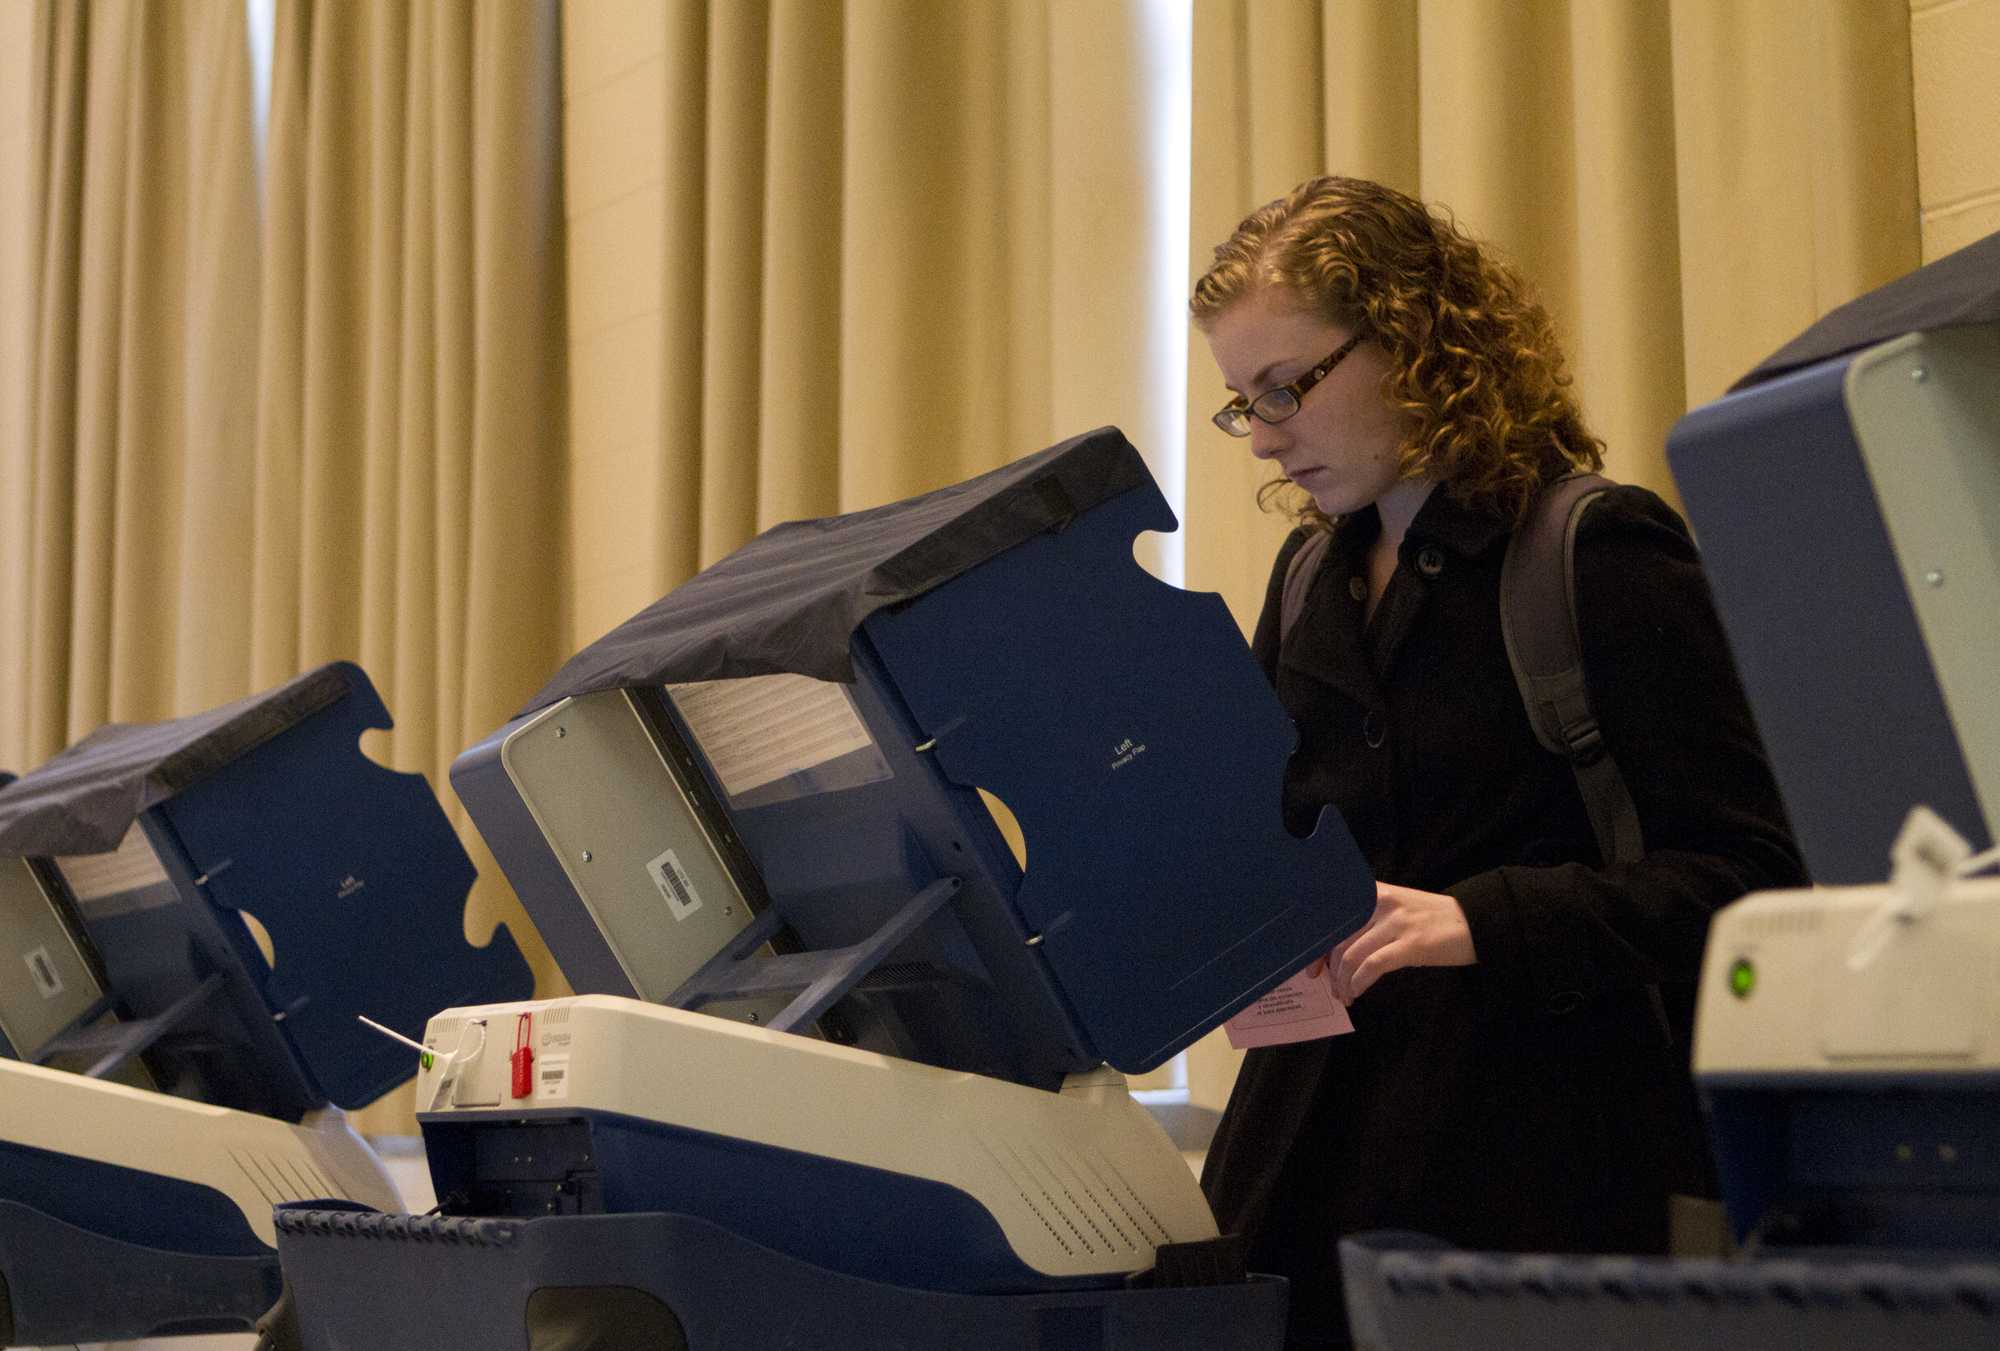 Weinberg sophomore Kayla Hammersmith casts her ballot for the 2012 presidential election last Tuesday in Parkes Hall. It was Hammersmith's first time voting.